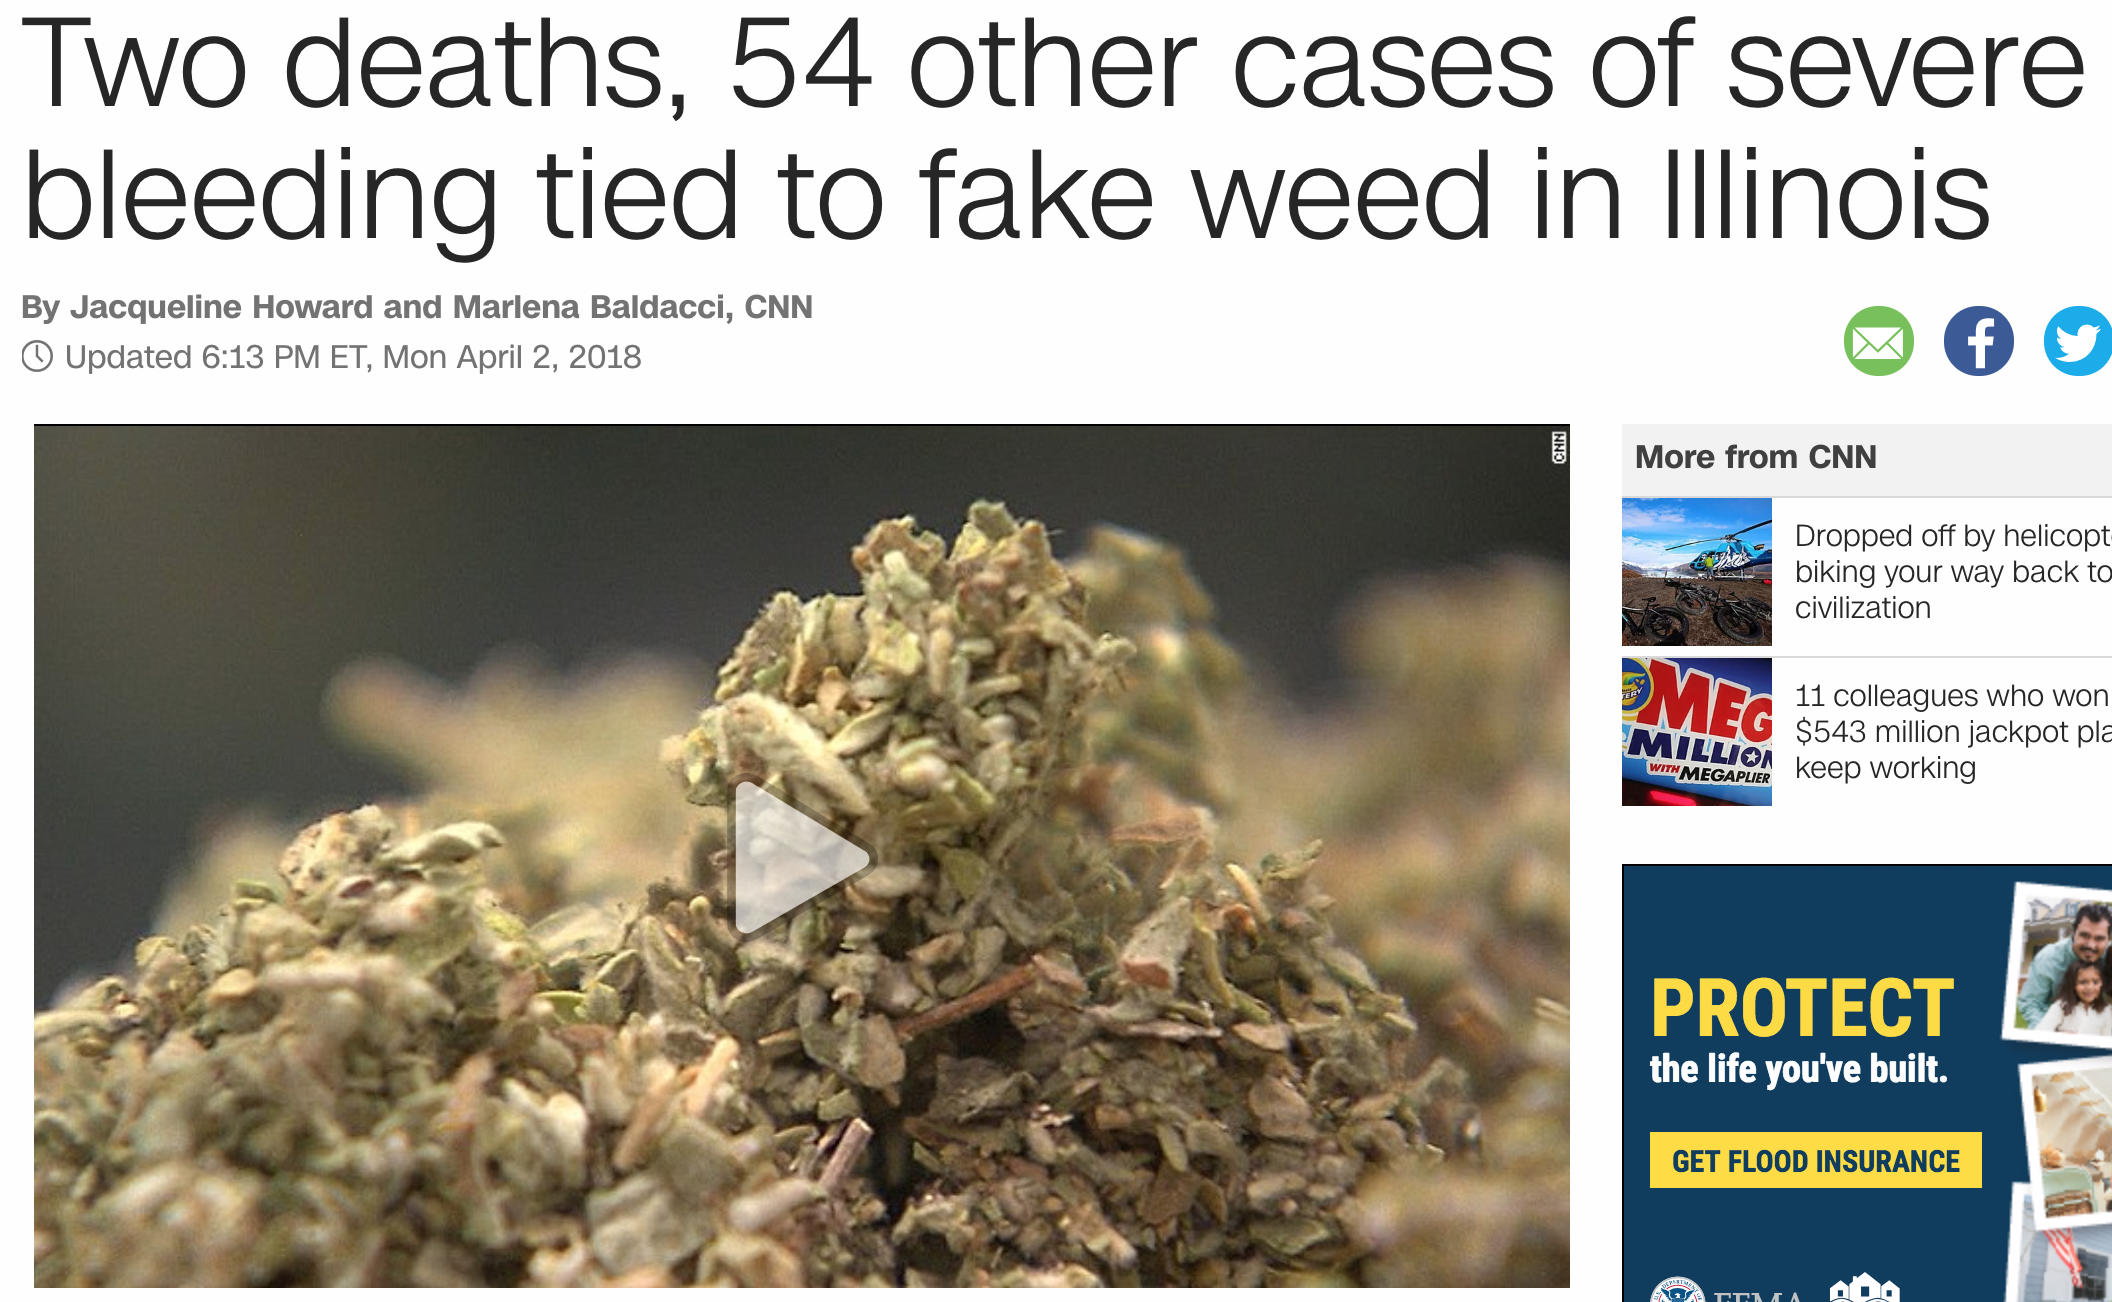 two deaths, 54 other cases of severe bleeding tied to fake weed in illinois,